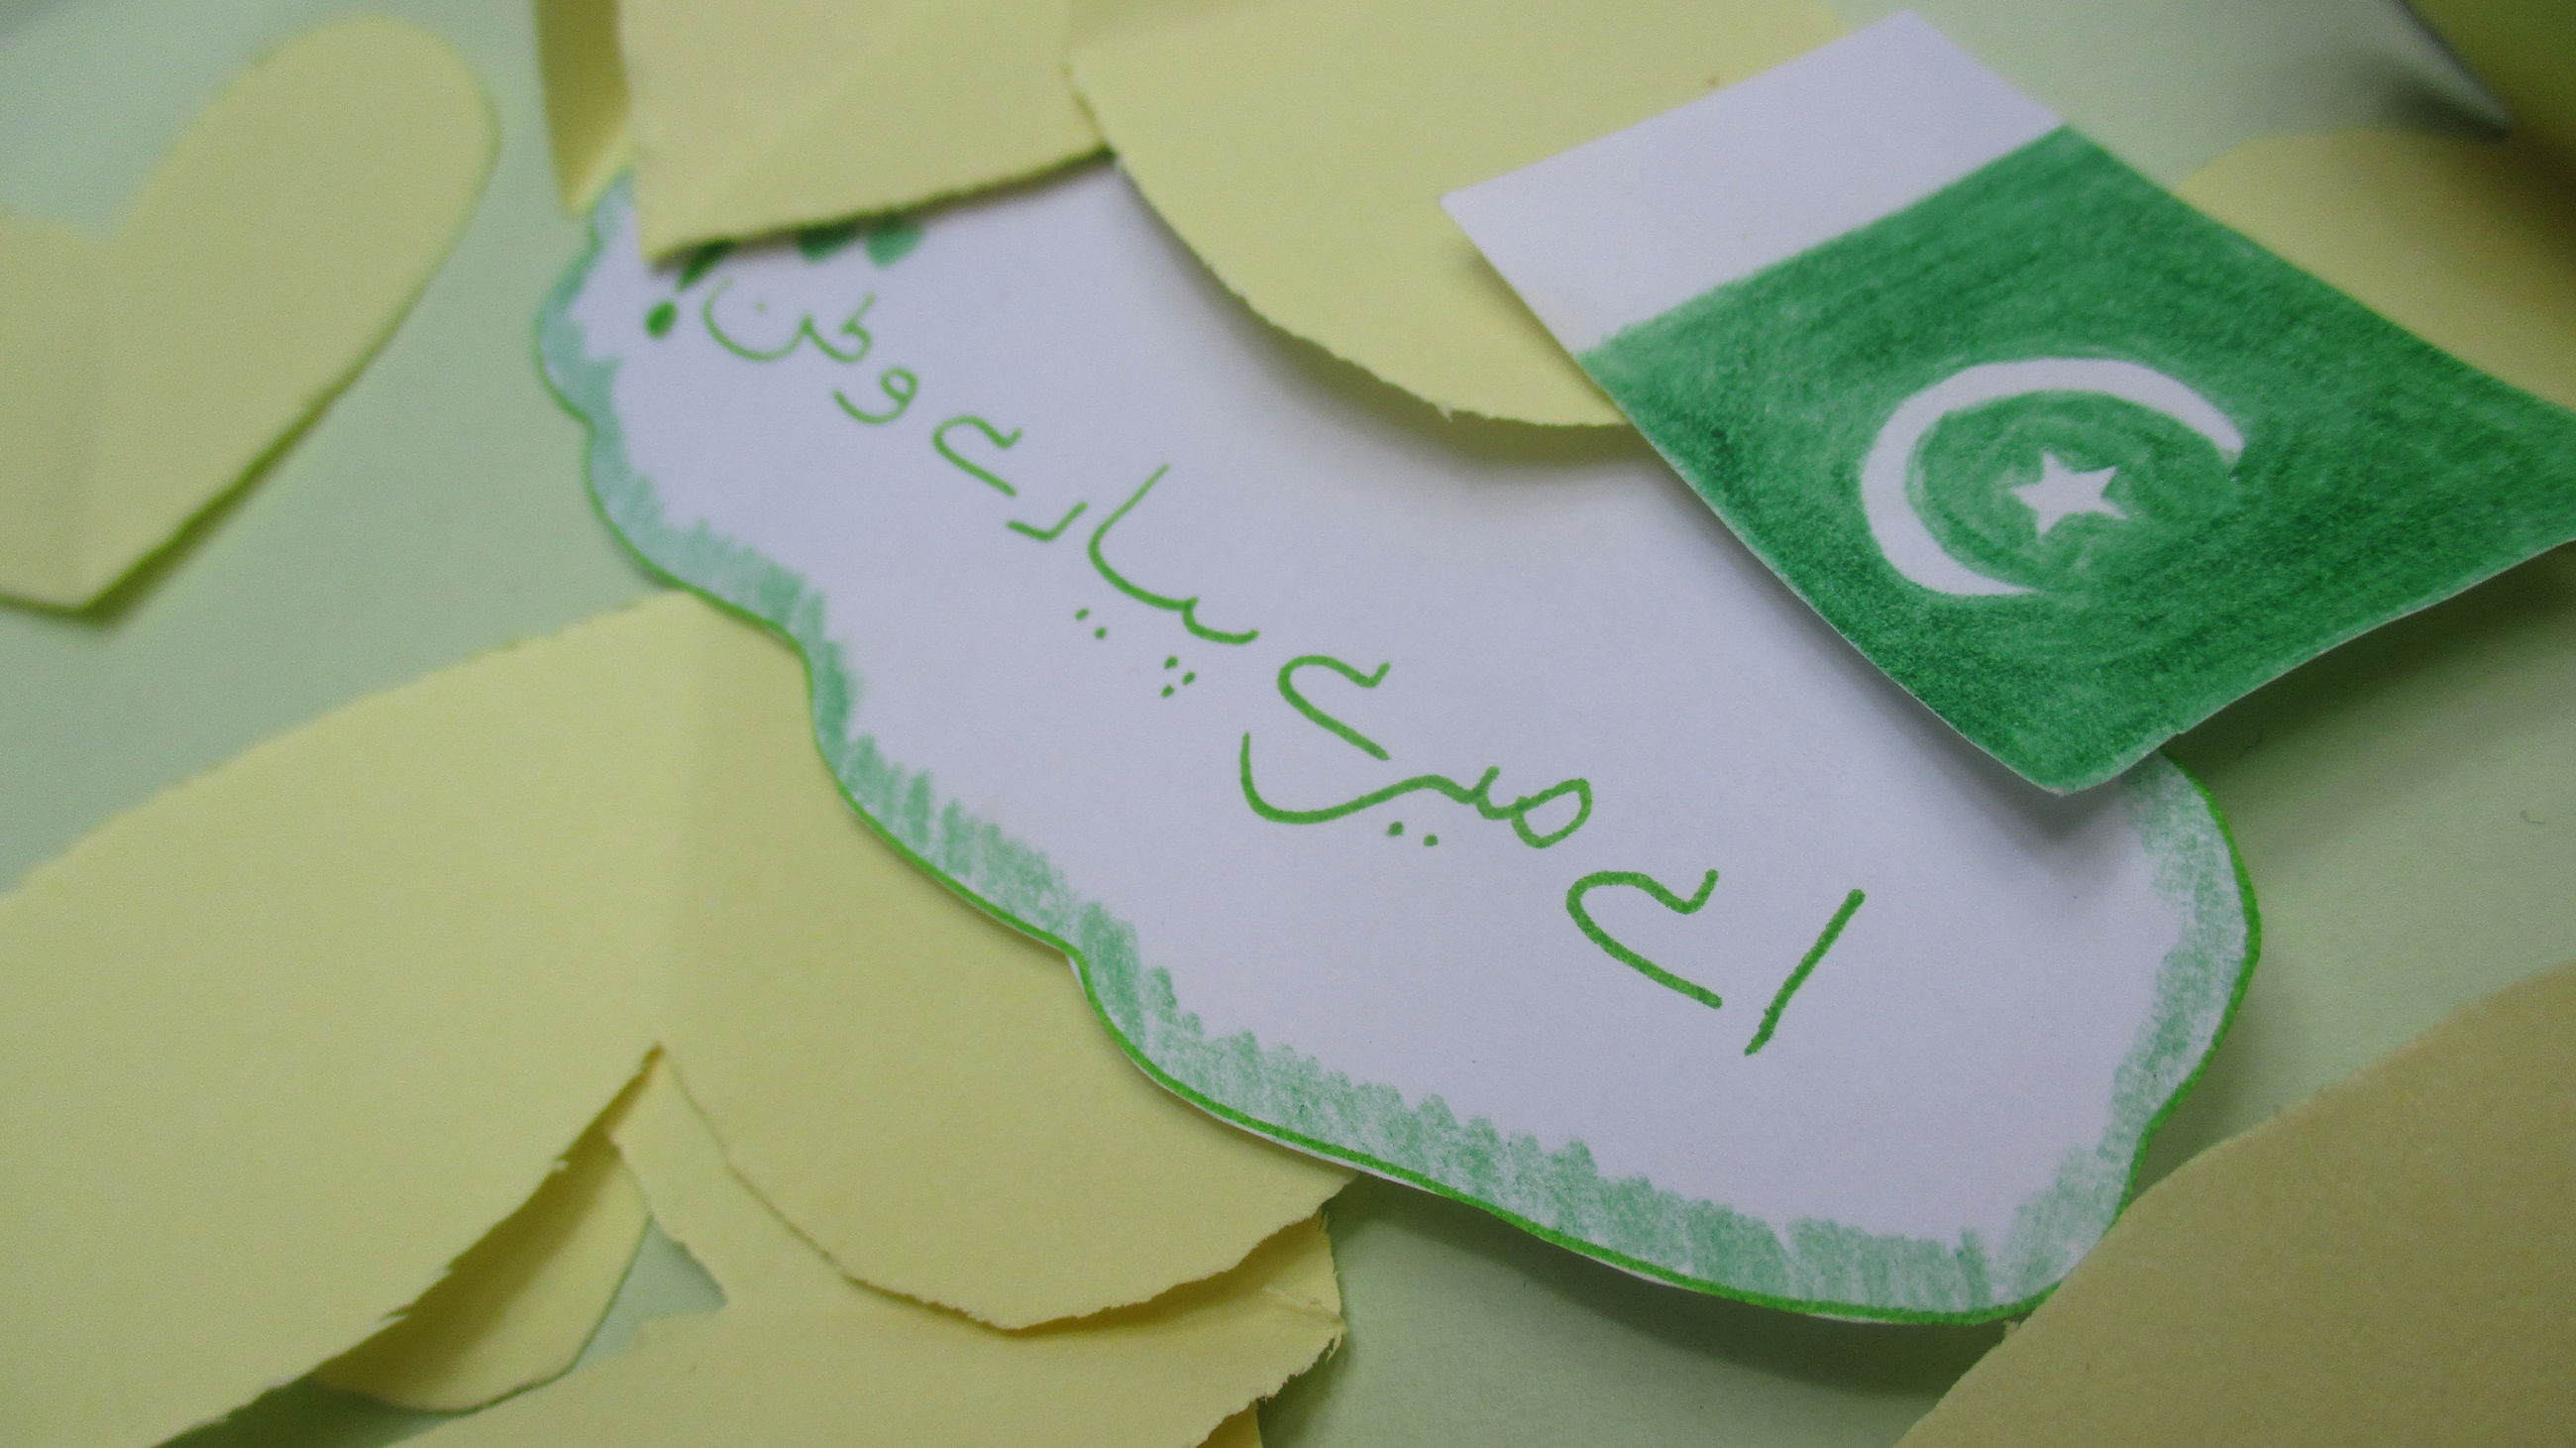 indoors, high angle view, close-up, text, paper, green color, message, full frame, geometric shape, no people, multi colored